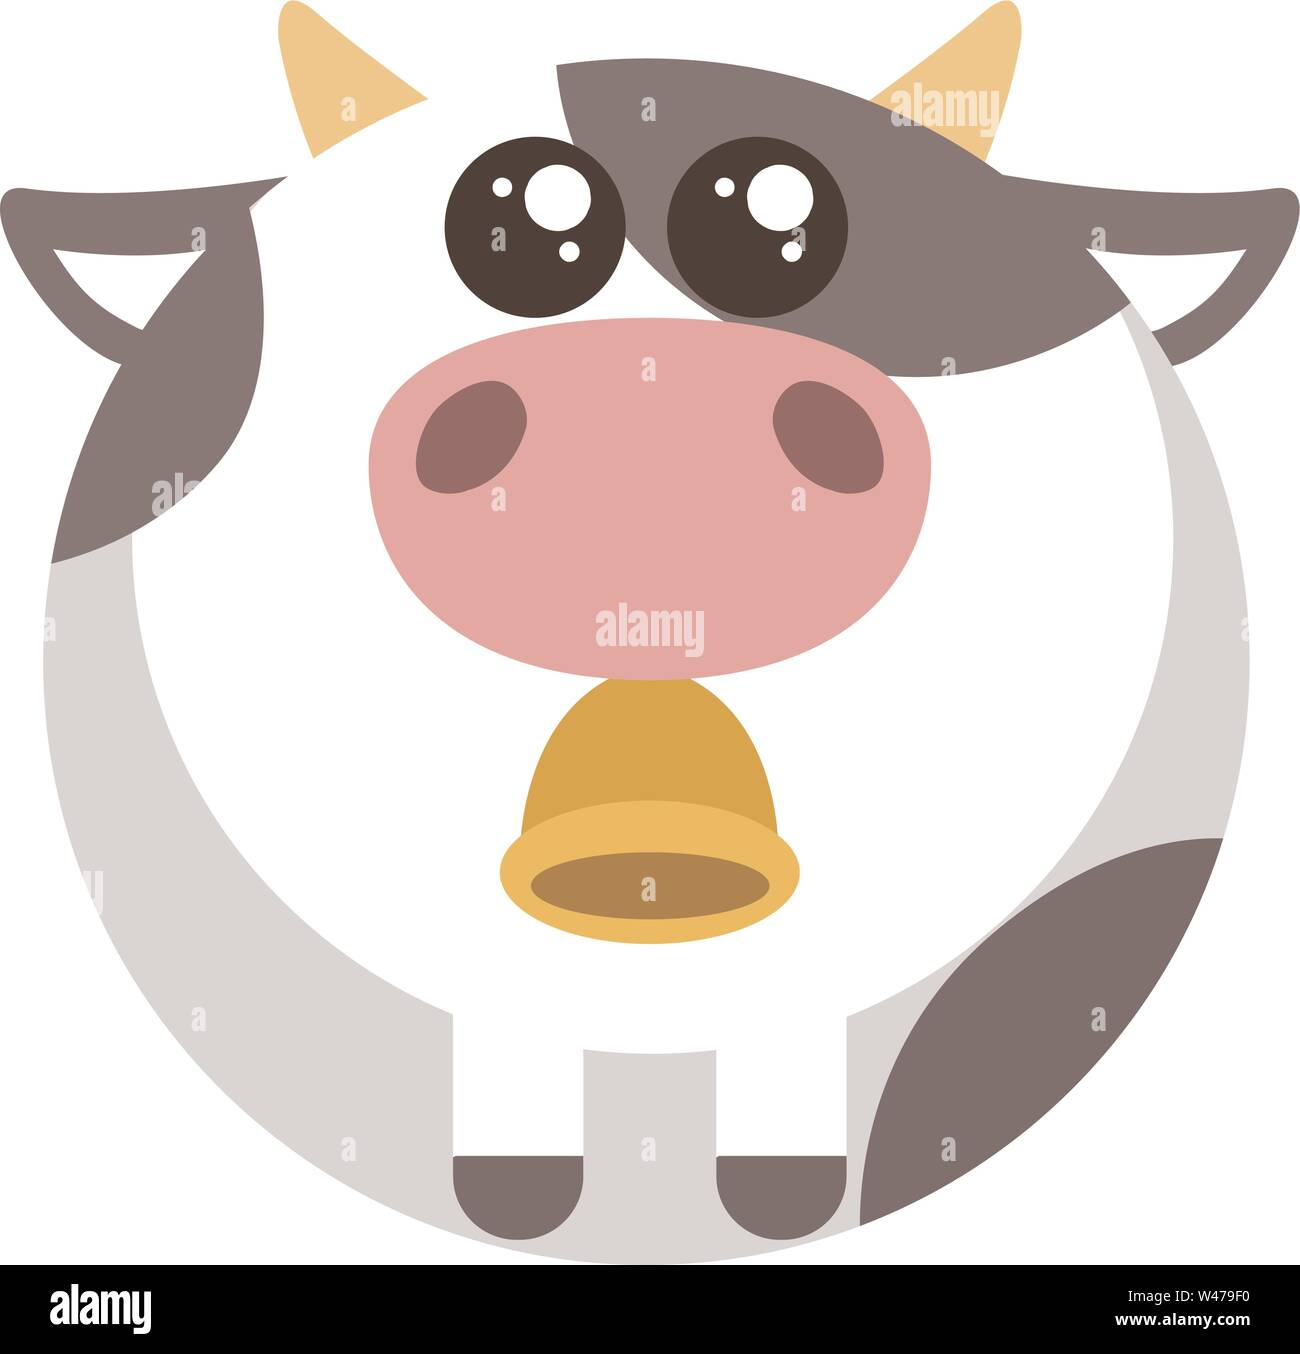 Fat cow with bell, illustration, vector on white background. - Stock Image